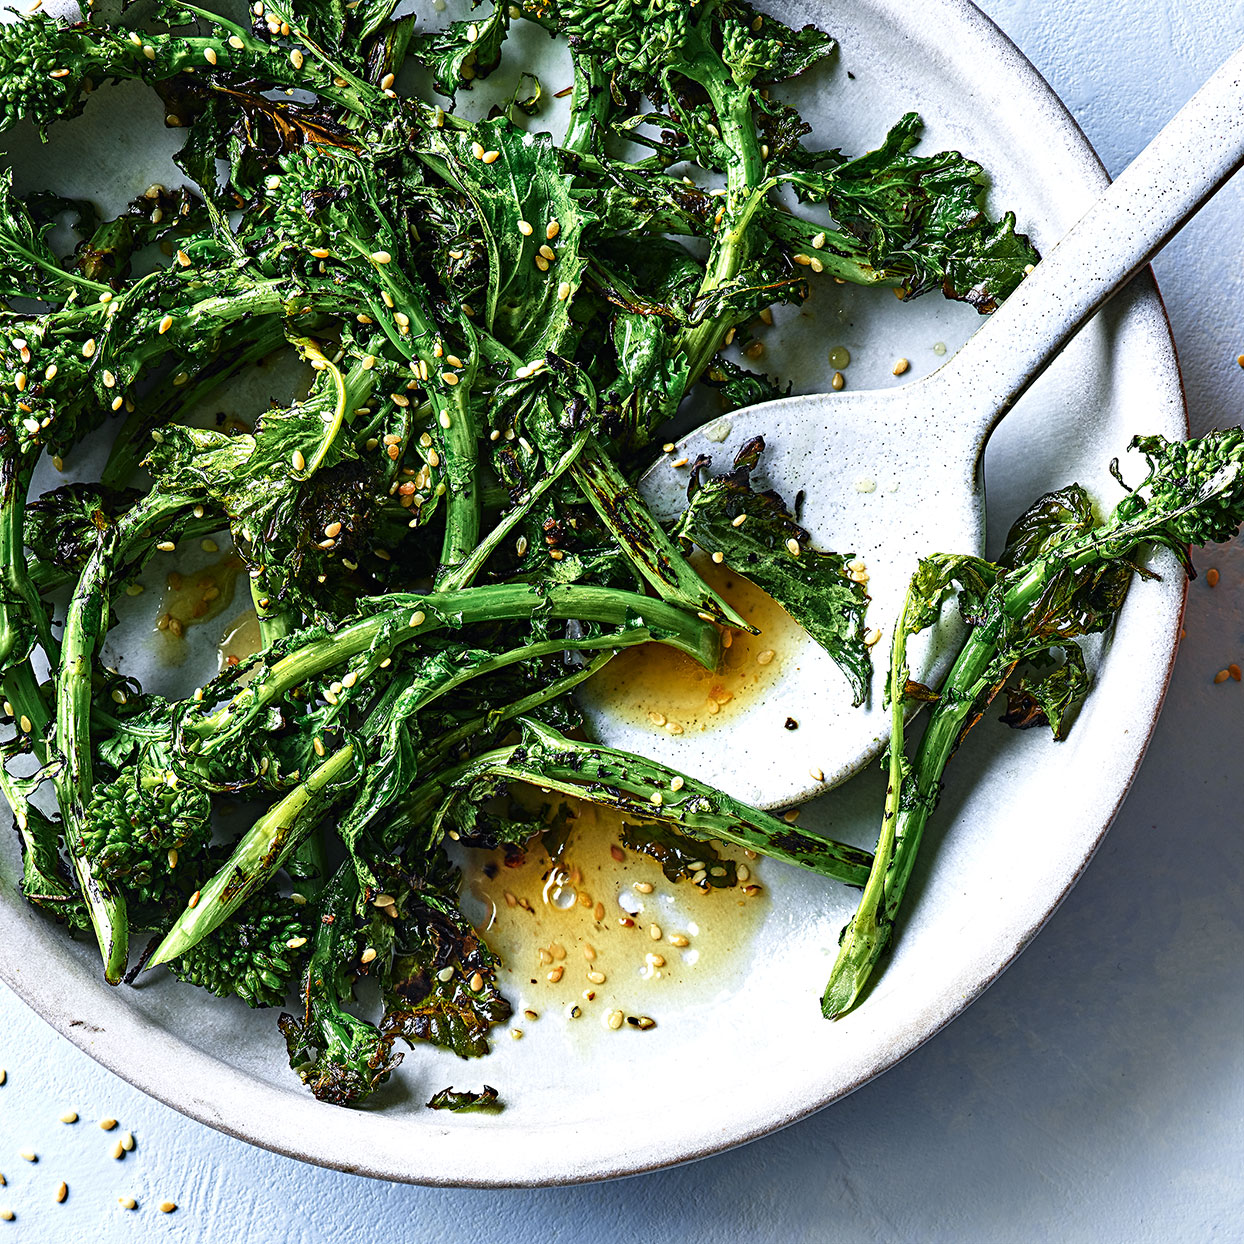 Broccoli Rabe with Orange & Sesame Trusted Brands